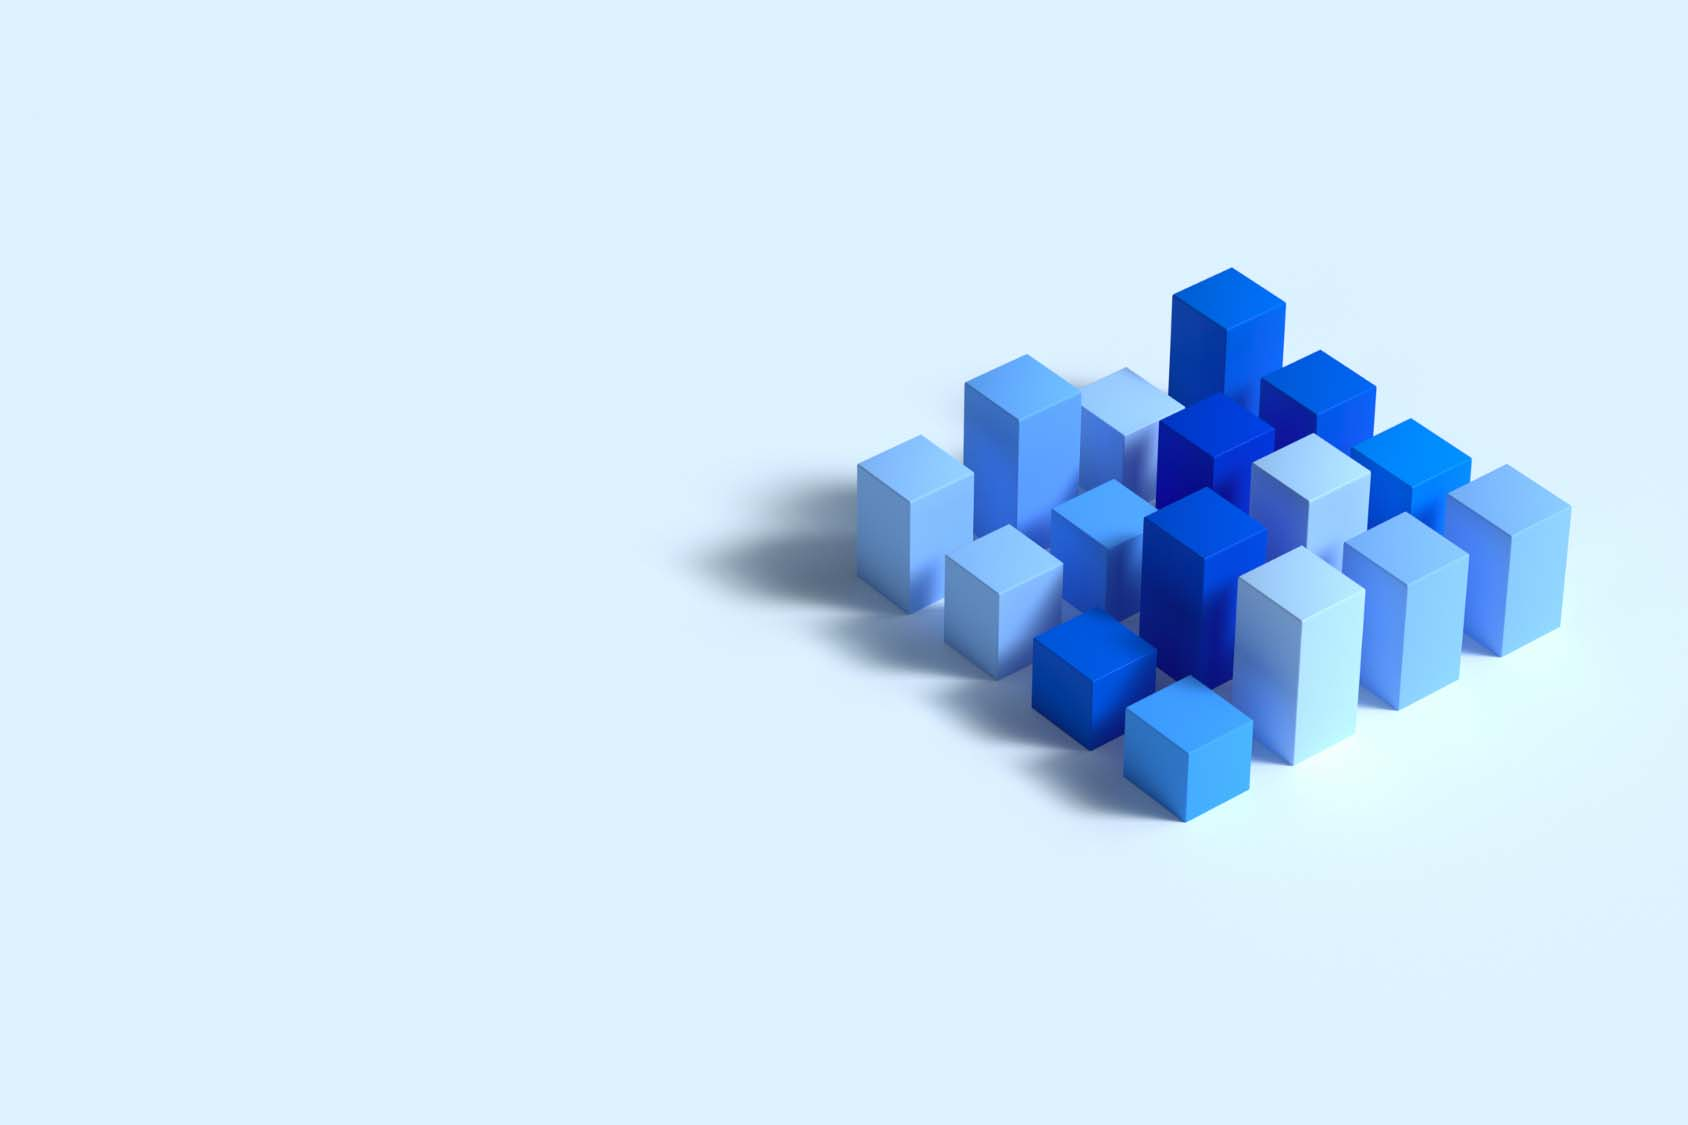 Rendering of blue blocks